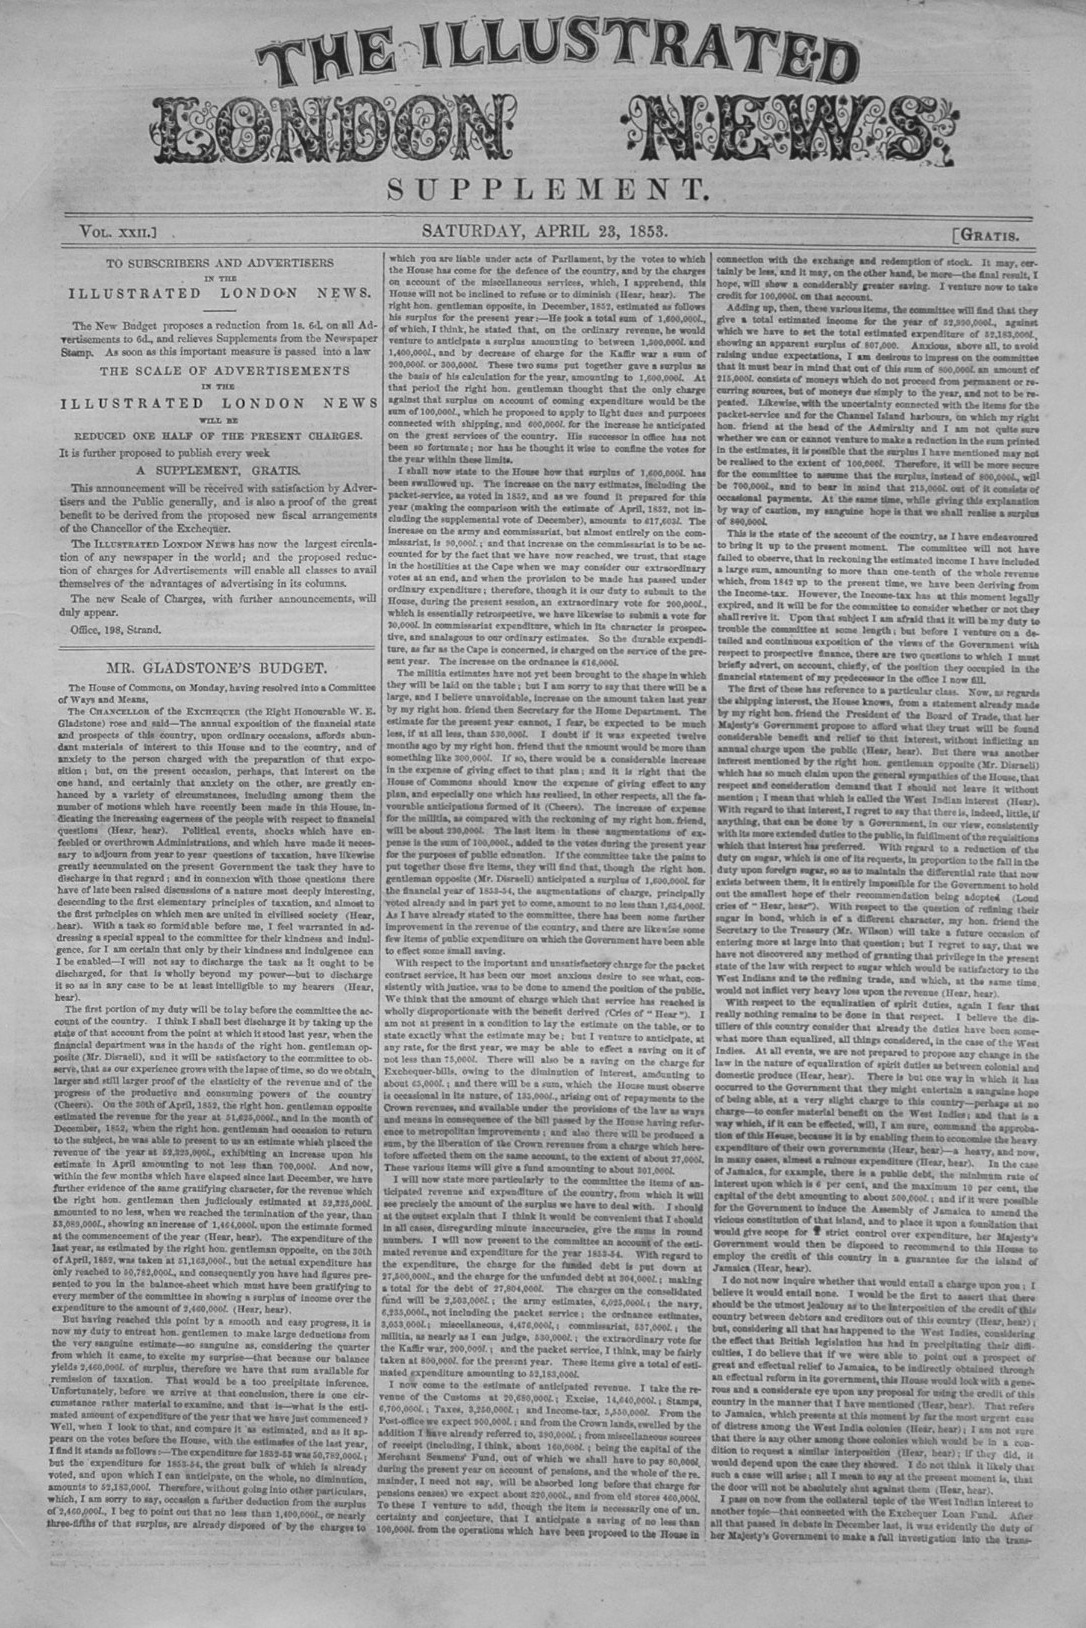 Illustrated London News Supplement For April 23rd, 1853.